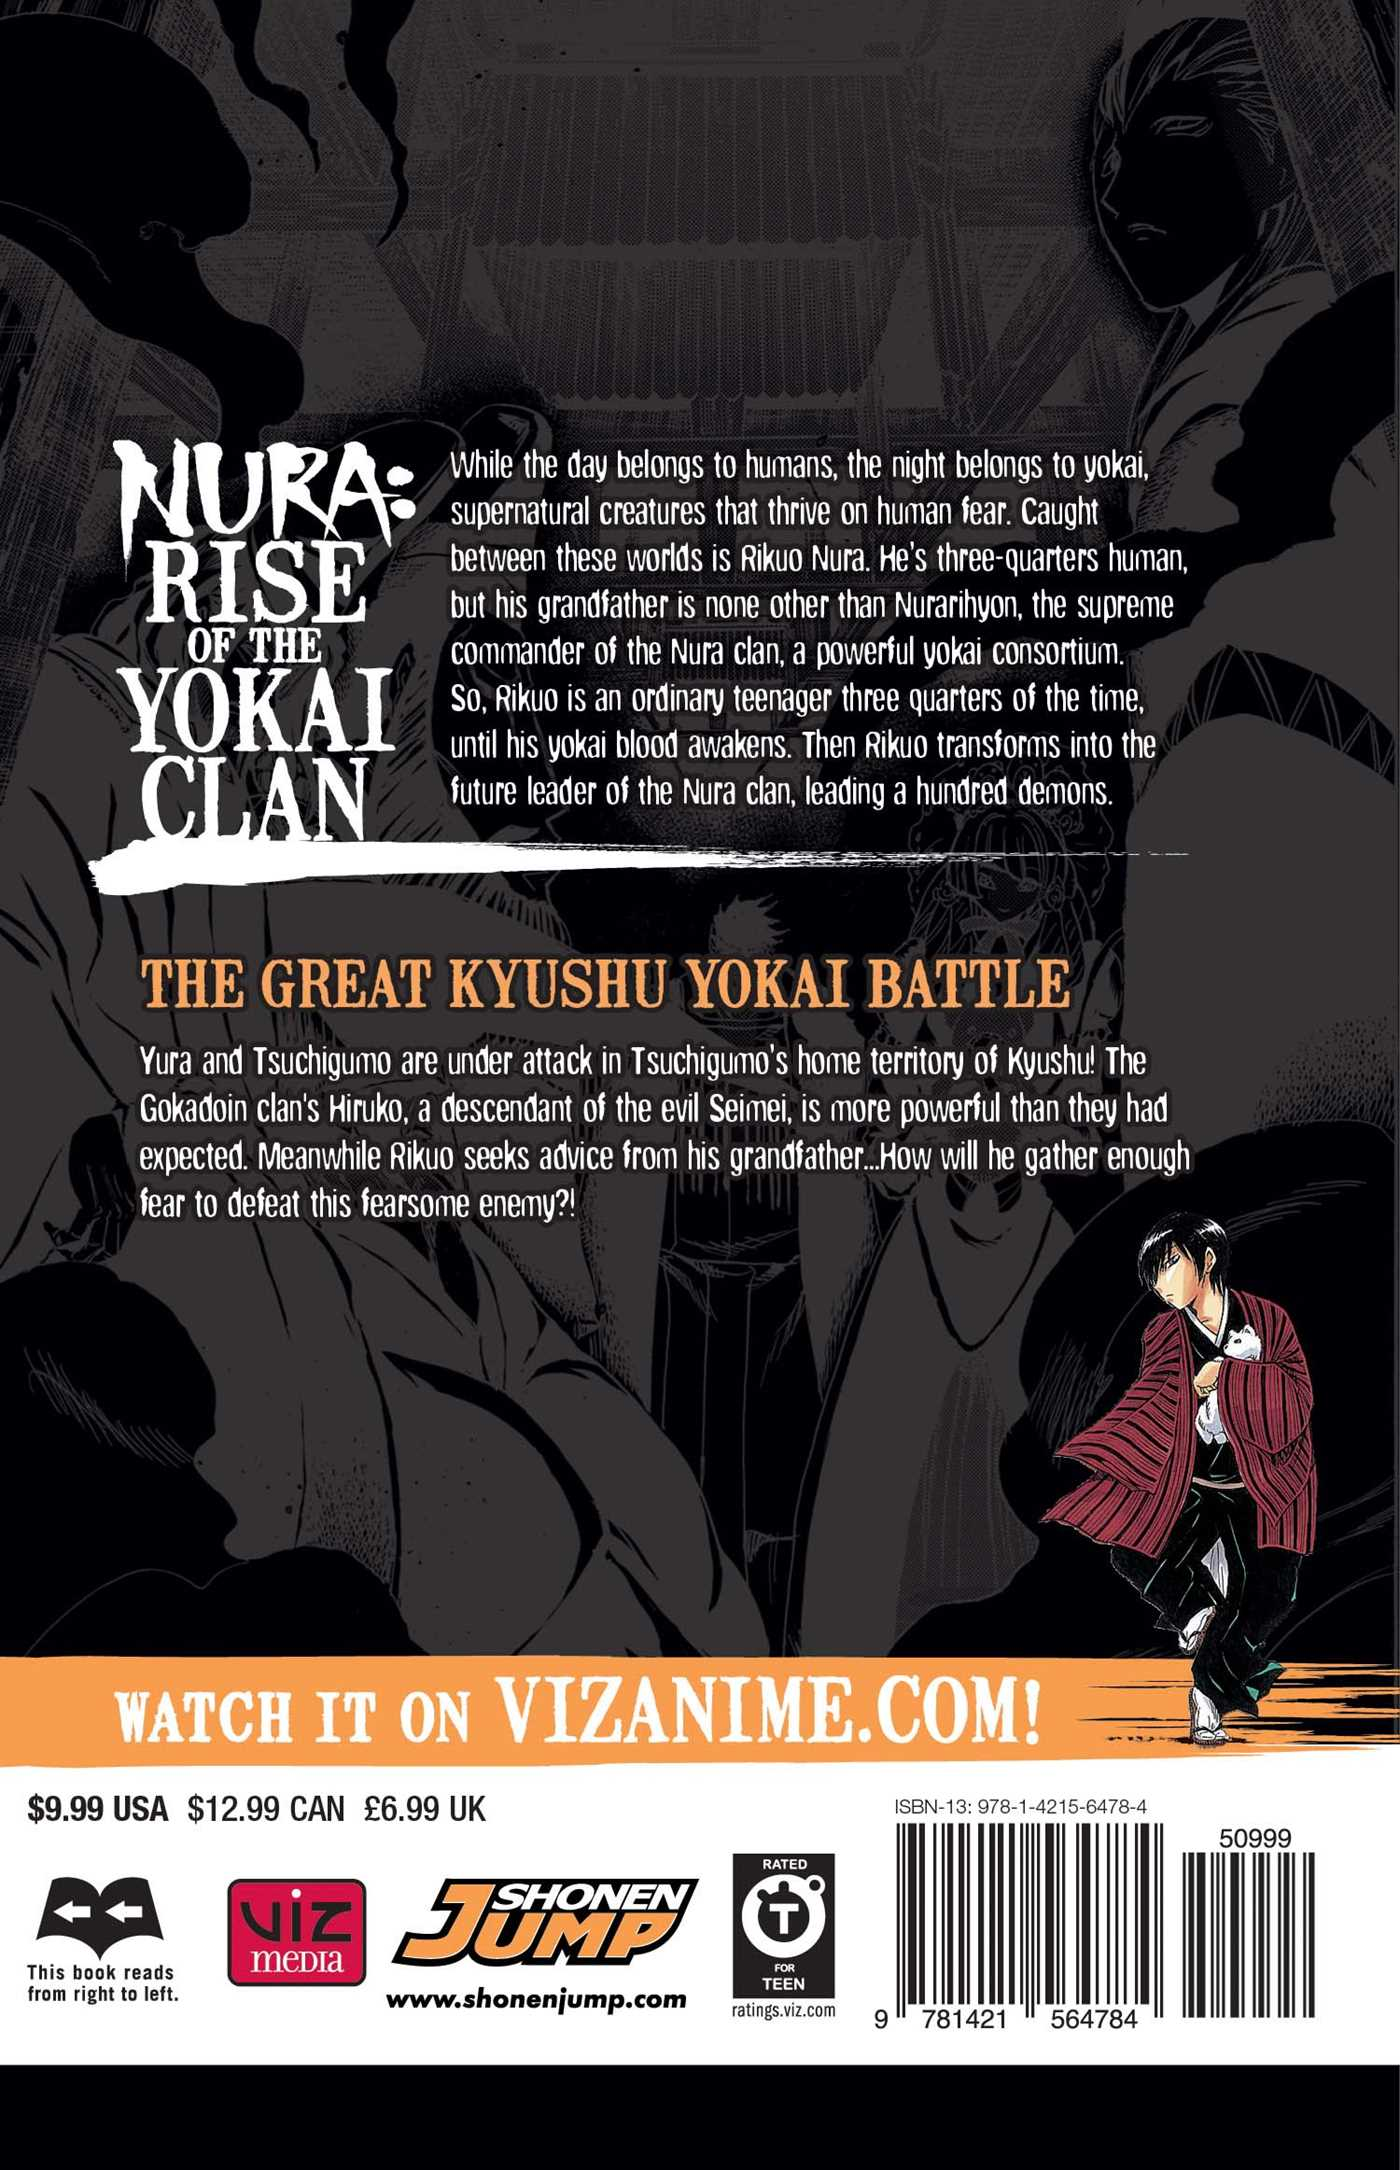 Nura-rise-of-the-yokai-clan-vol-23-9781421564784_hr-back